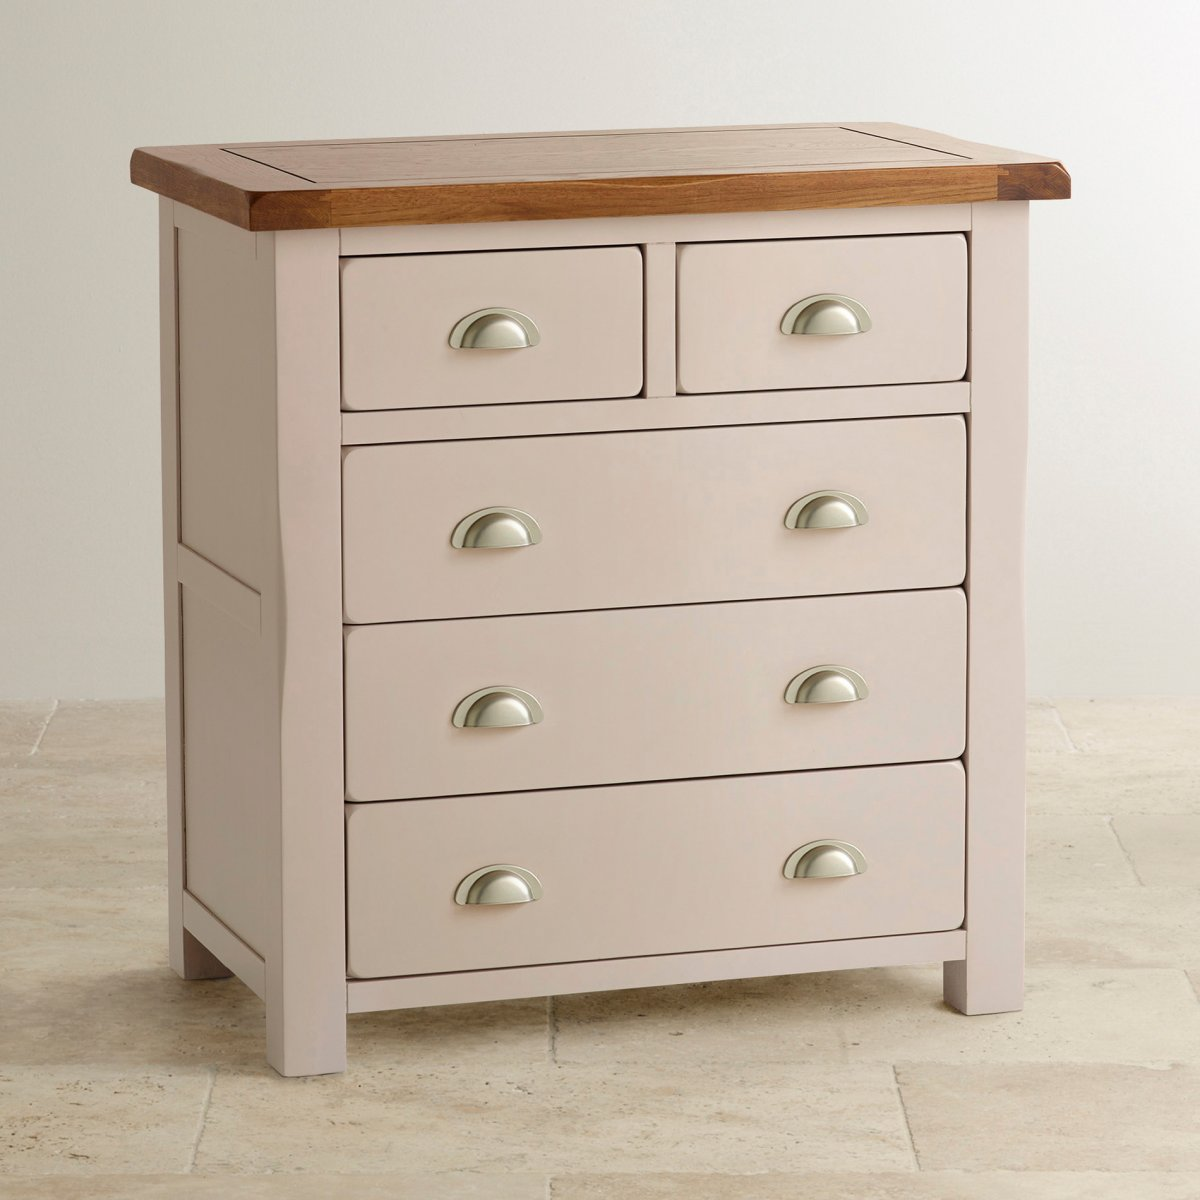 daisy painted chest of drawers in rustic oak oak furniture land. Black Bedroom Furniture Sets. Home Design Ideas